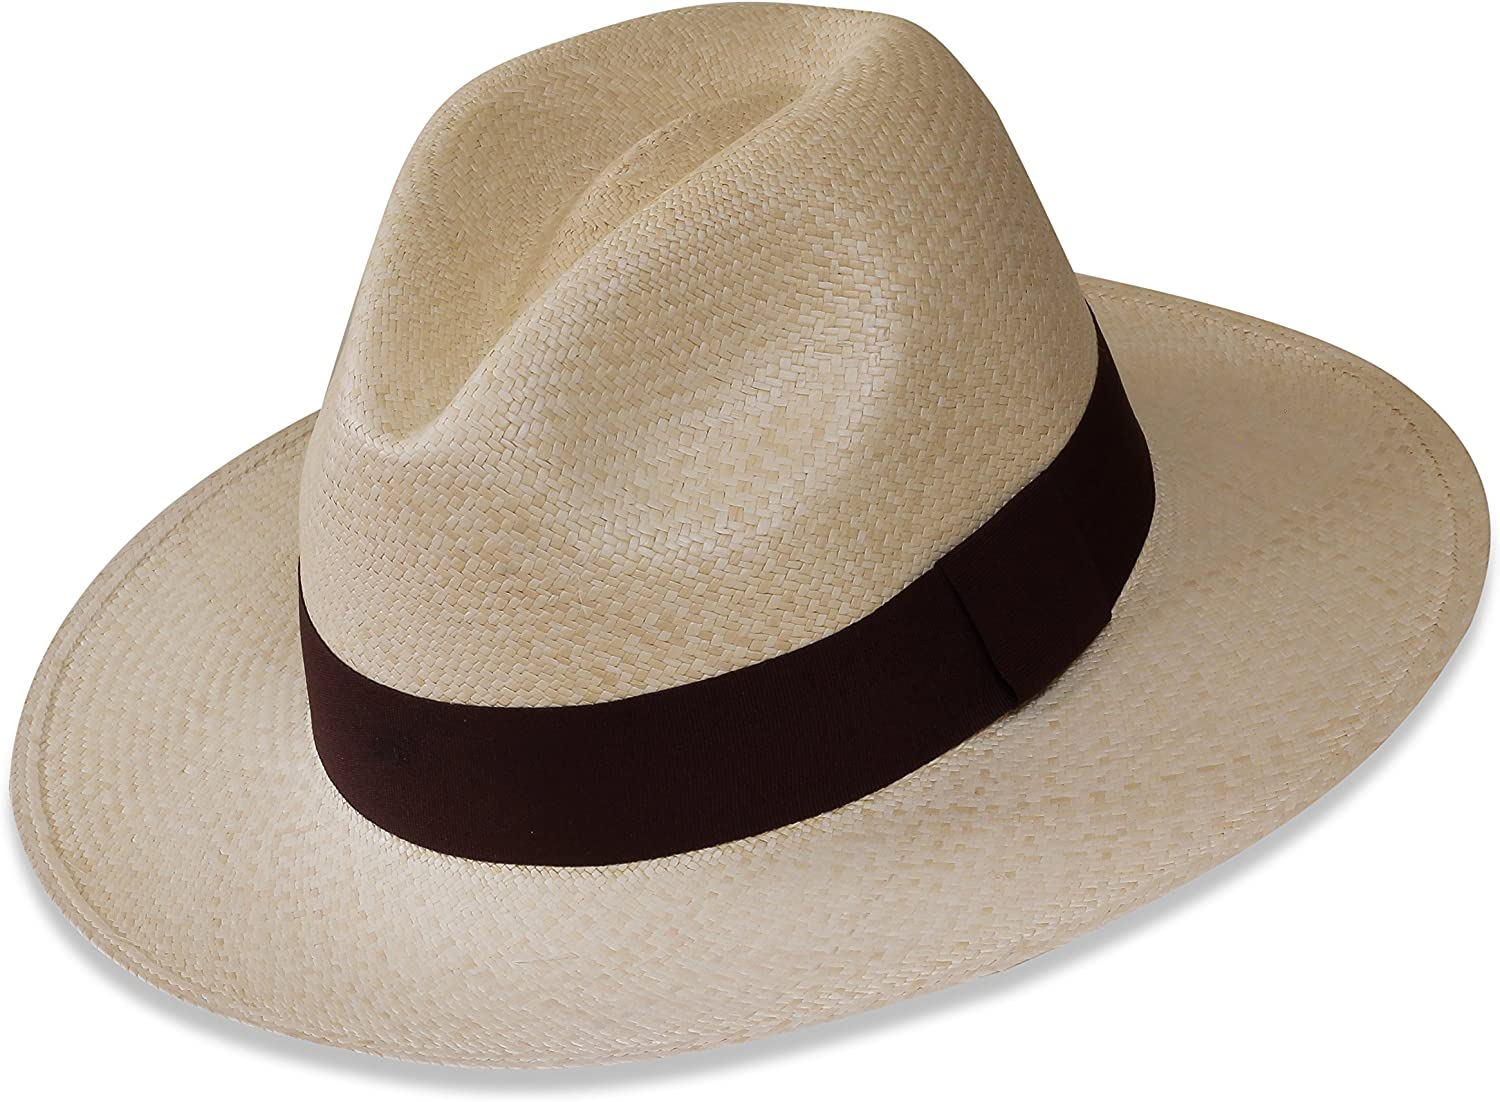 Tumia - Very popular! Fedora Panama Hat Quality inspection White or Vers Natural Non-Rollable